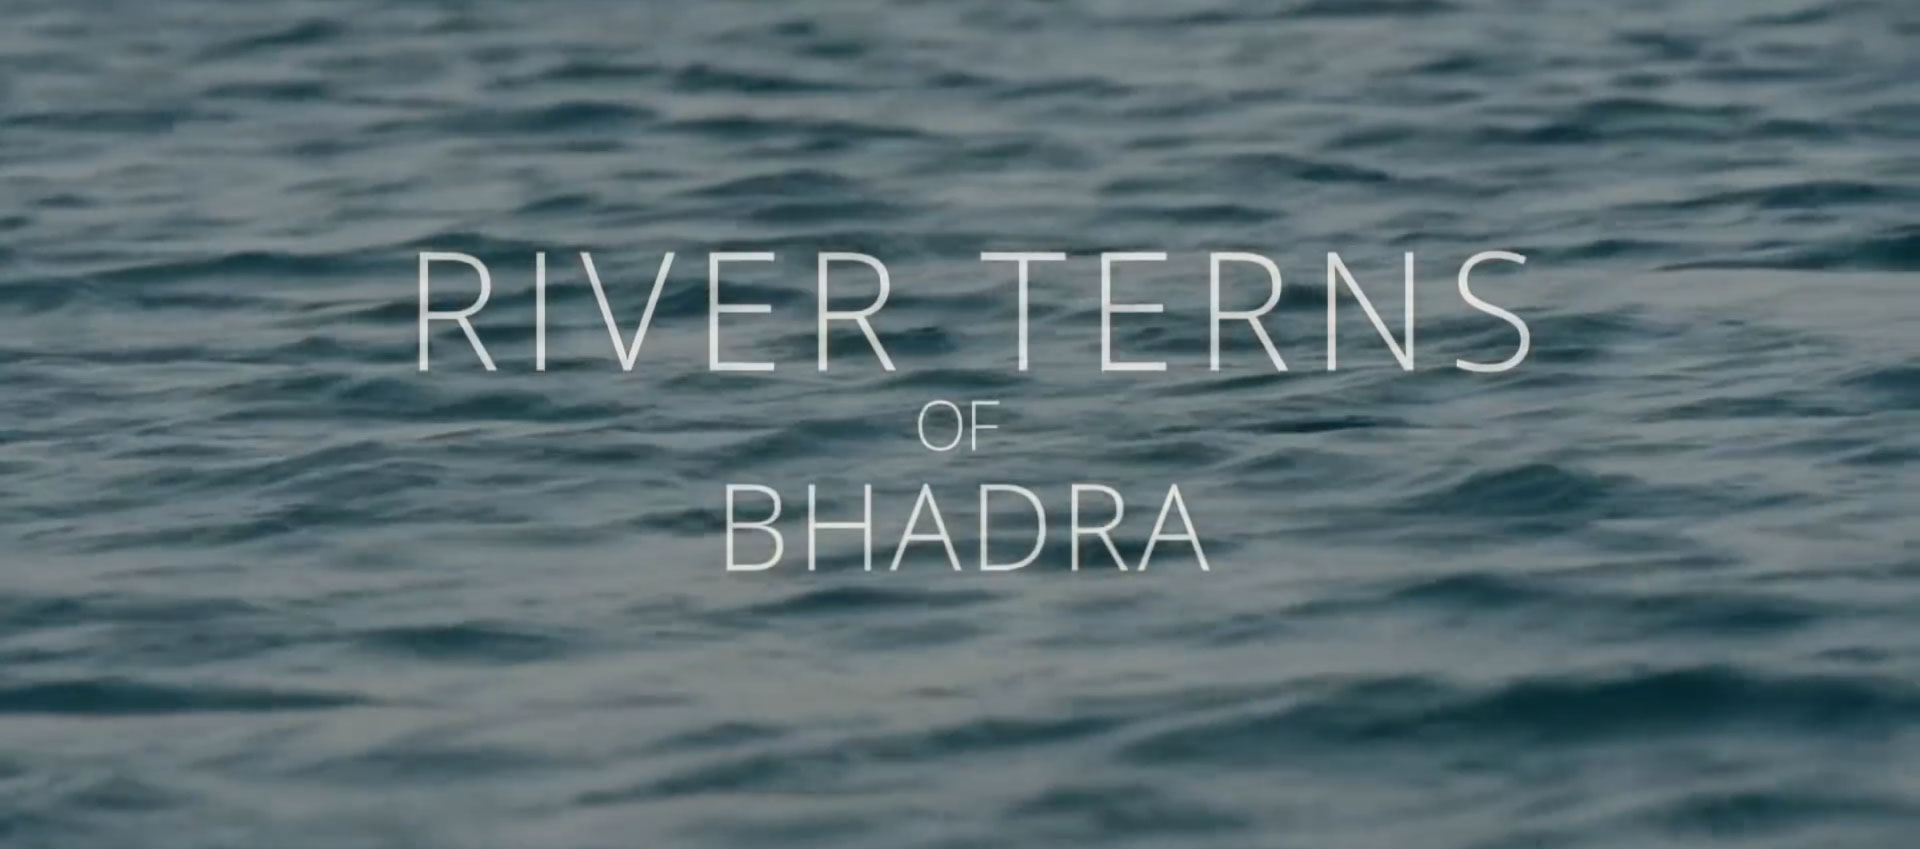 River Terns of Bhadra